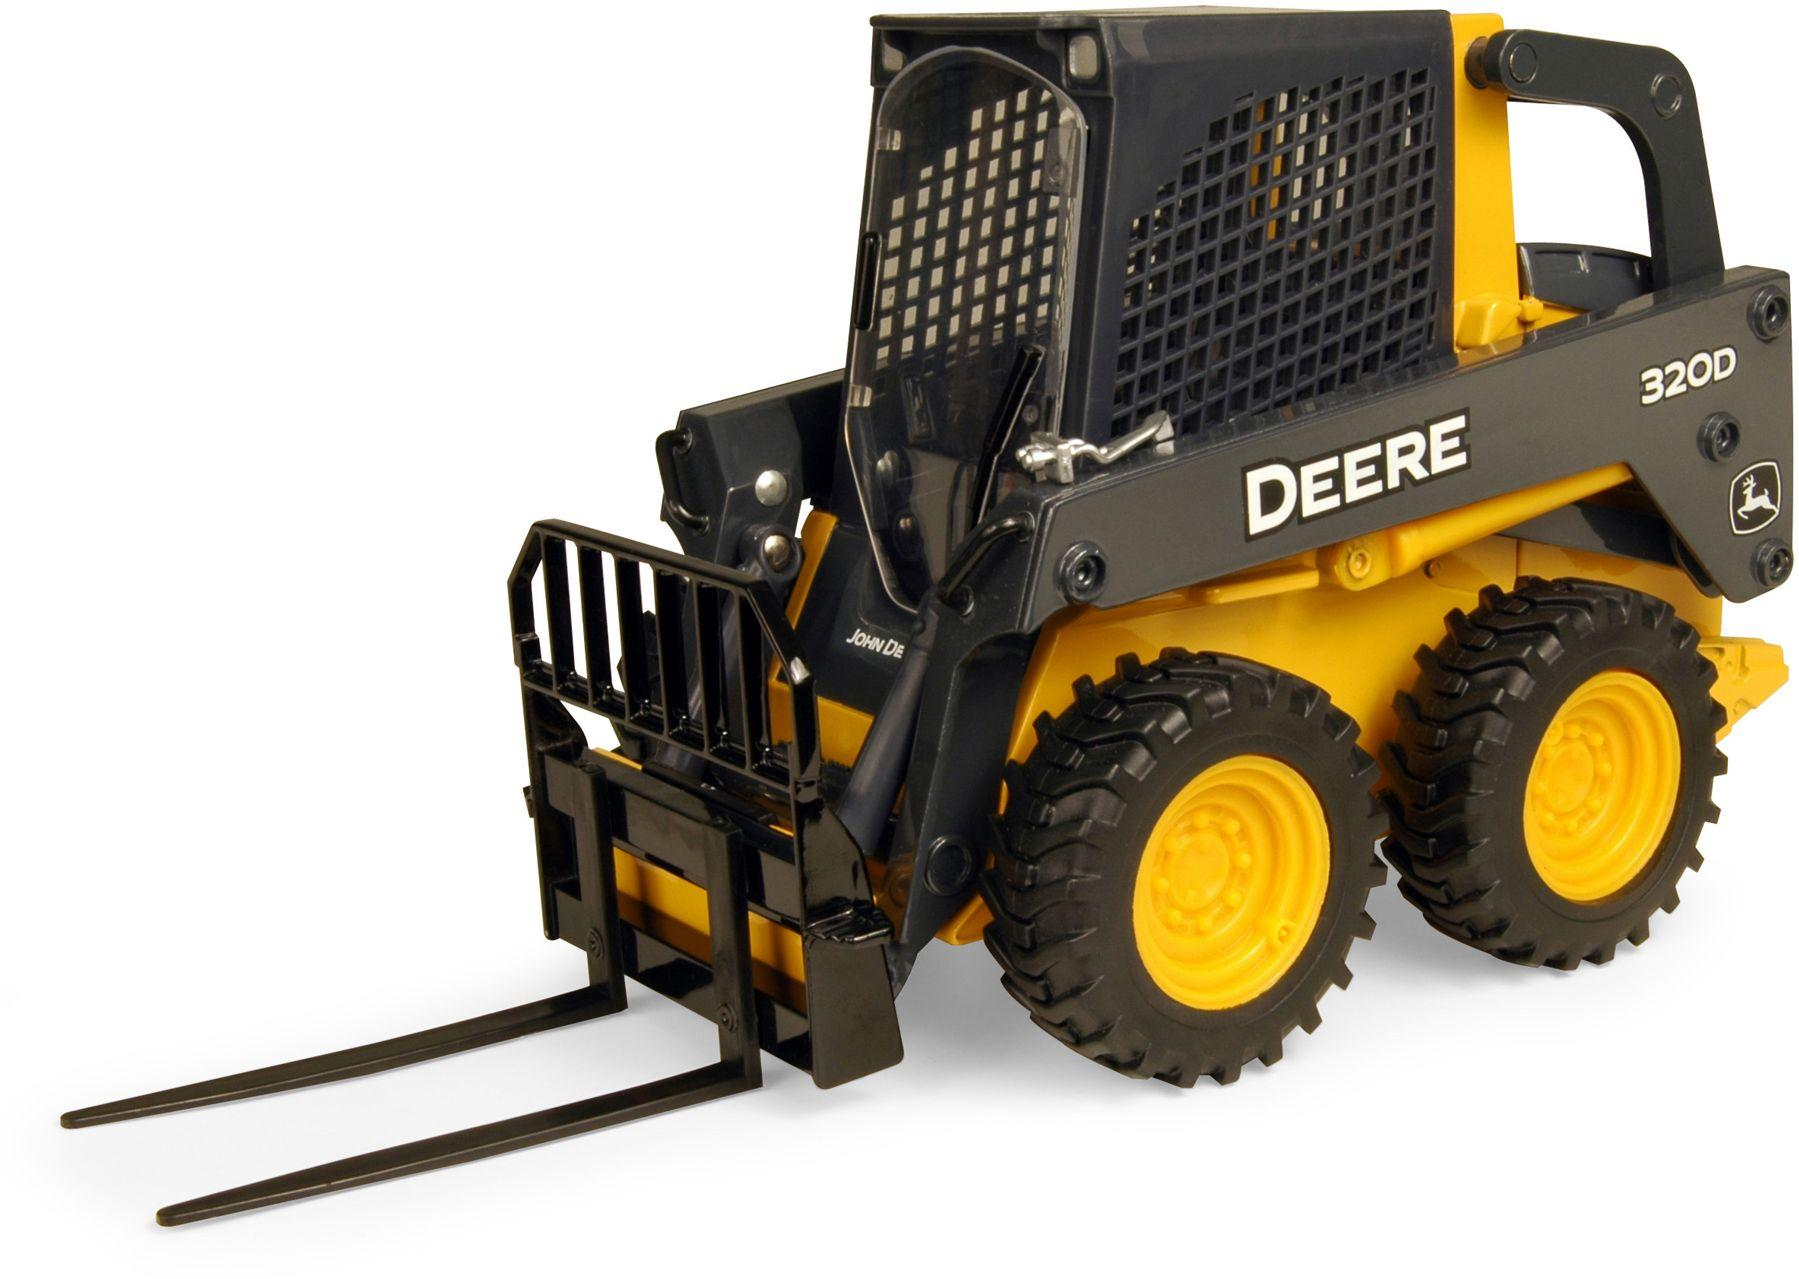 John Deere 318D and 320D Skid Steer Loader (EH Controls ... on john deere 300 wiring diagram, john deere riding mower diagram, john deere wire diagram, john deere 4020 wiring diagram, john deere 2440 wiring diagram, john deere b wiring harness, john deere 145 wiring-diagram, john deere 1050 wiring diagram, john deere 1020 wiring harness, john deere 4640 cab wiring diagram, john deere 316 wiring-diagram, john deere 6420 wiring diagram, john deere z225 wiring-diagram, john deere wiring harness connectors, john deere 216 wiring diagram, john deere light wiring diagram, john deere tractor wiring, john deere electrical diagrams, john deere mower wiring diagram, john deere gator hpx wiring-diagram,